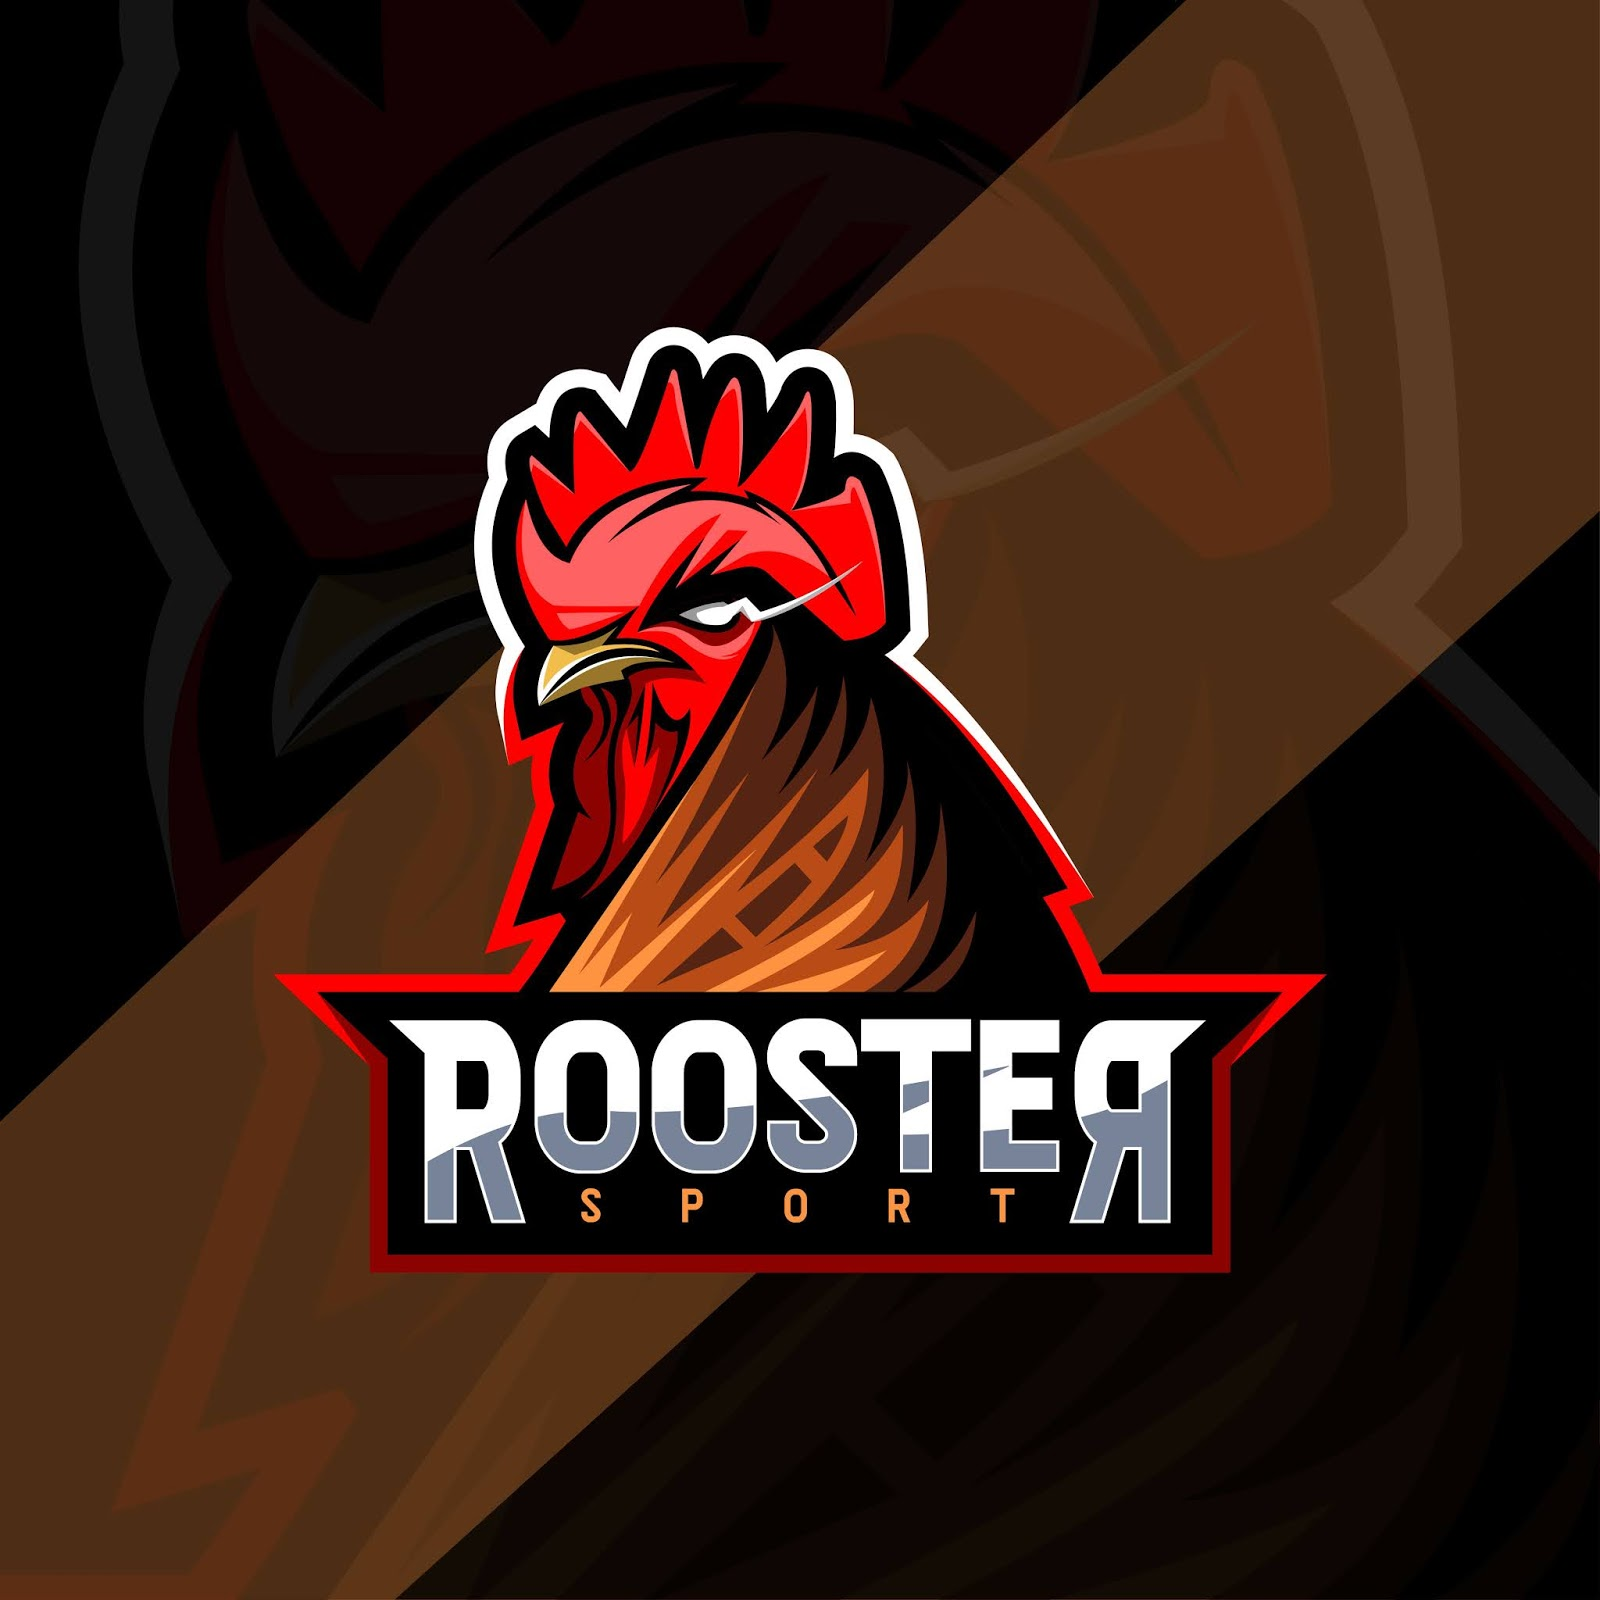 Rooster Mascot Logo Esport Templates Free Download Vector CDR, AI, EPS and PNG Formats